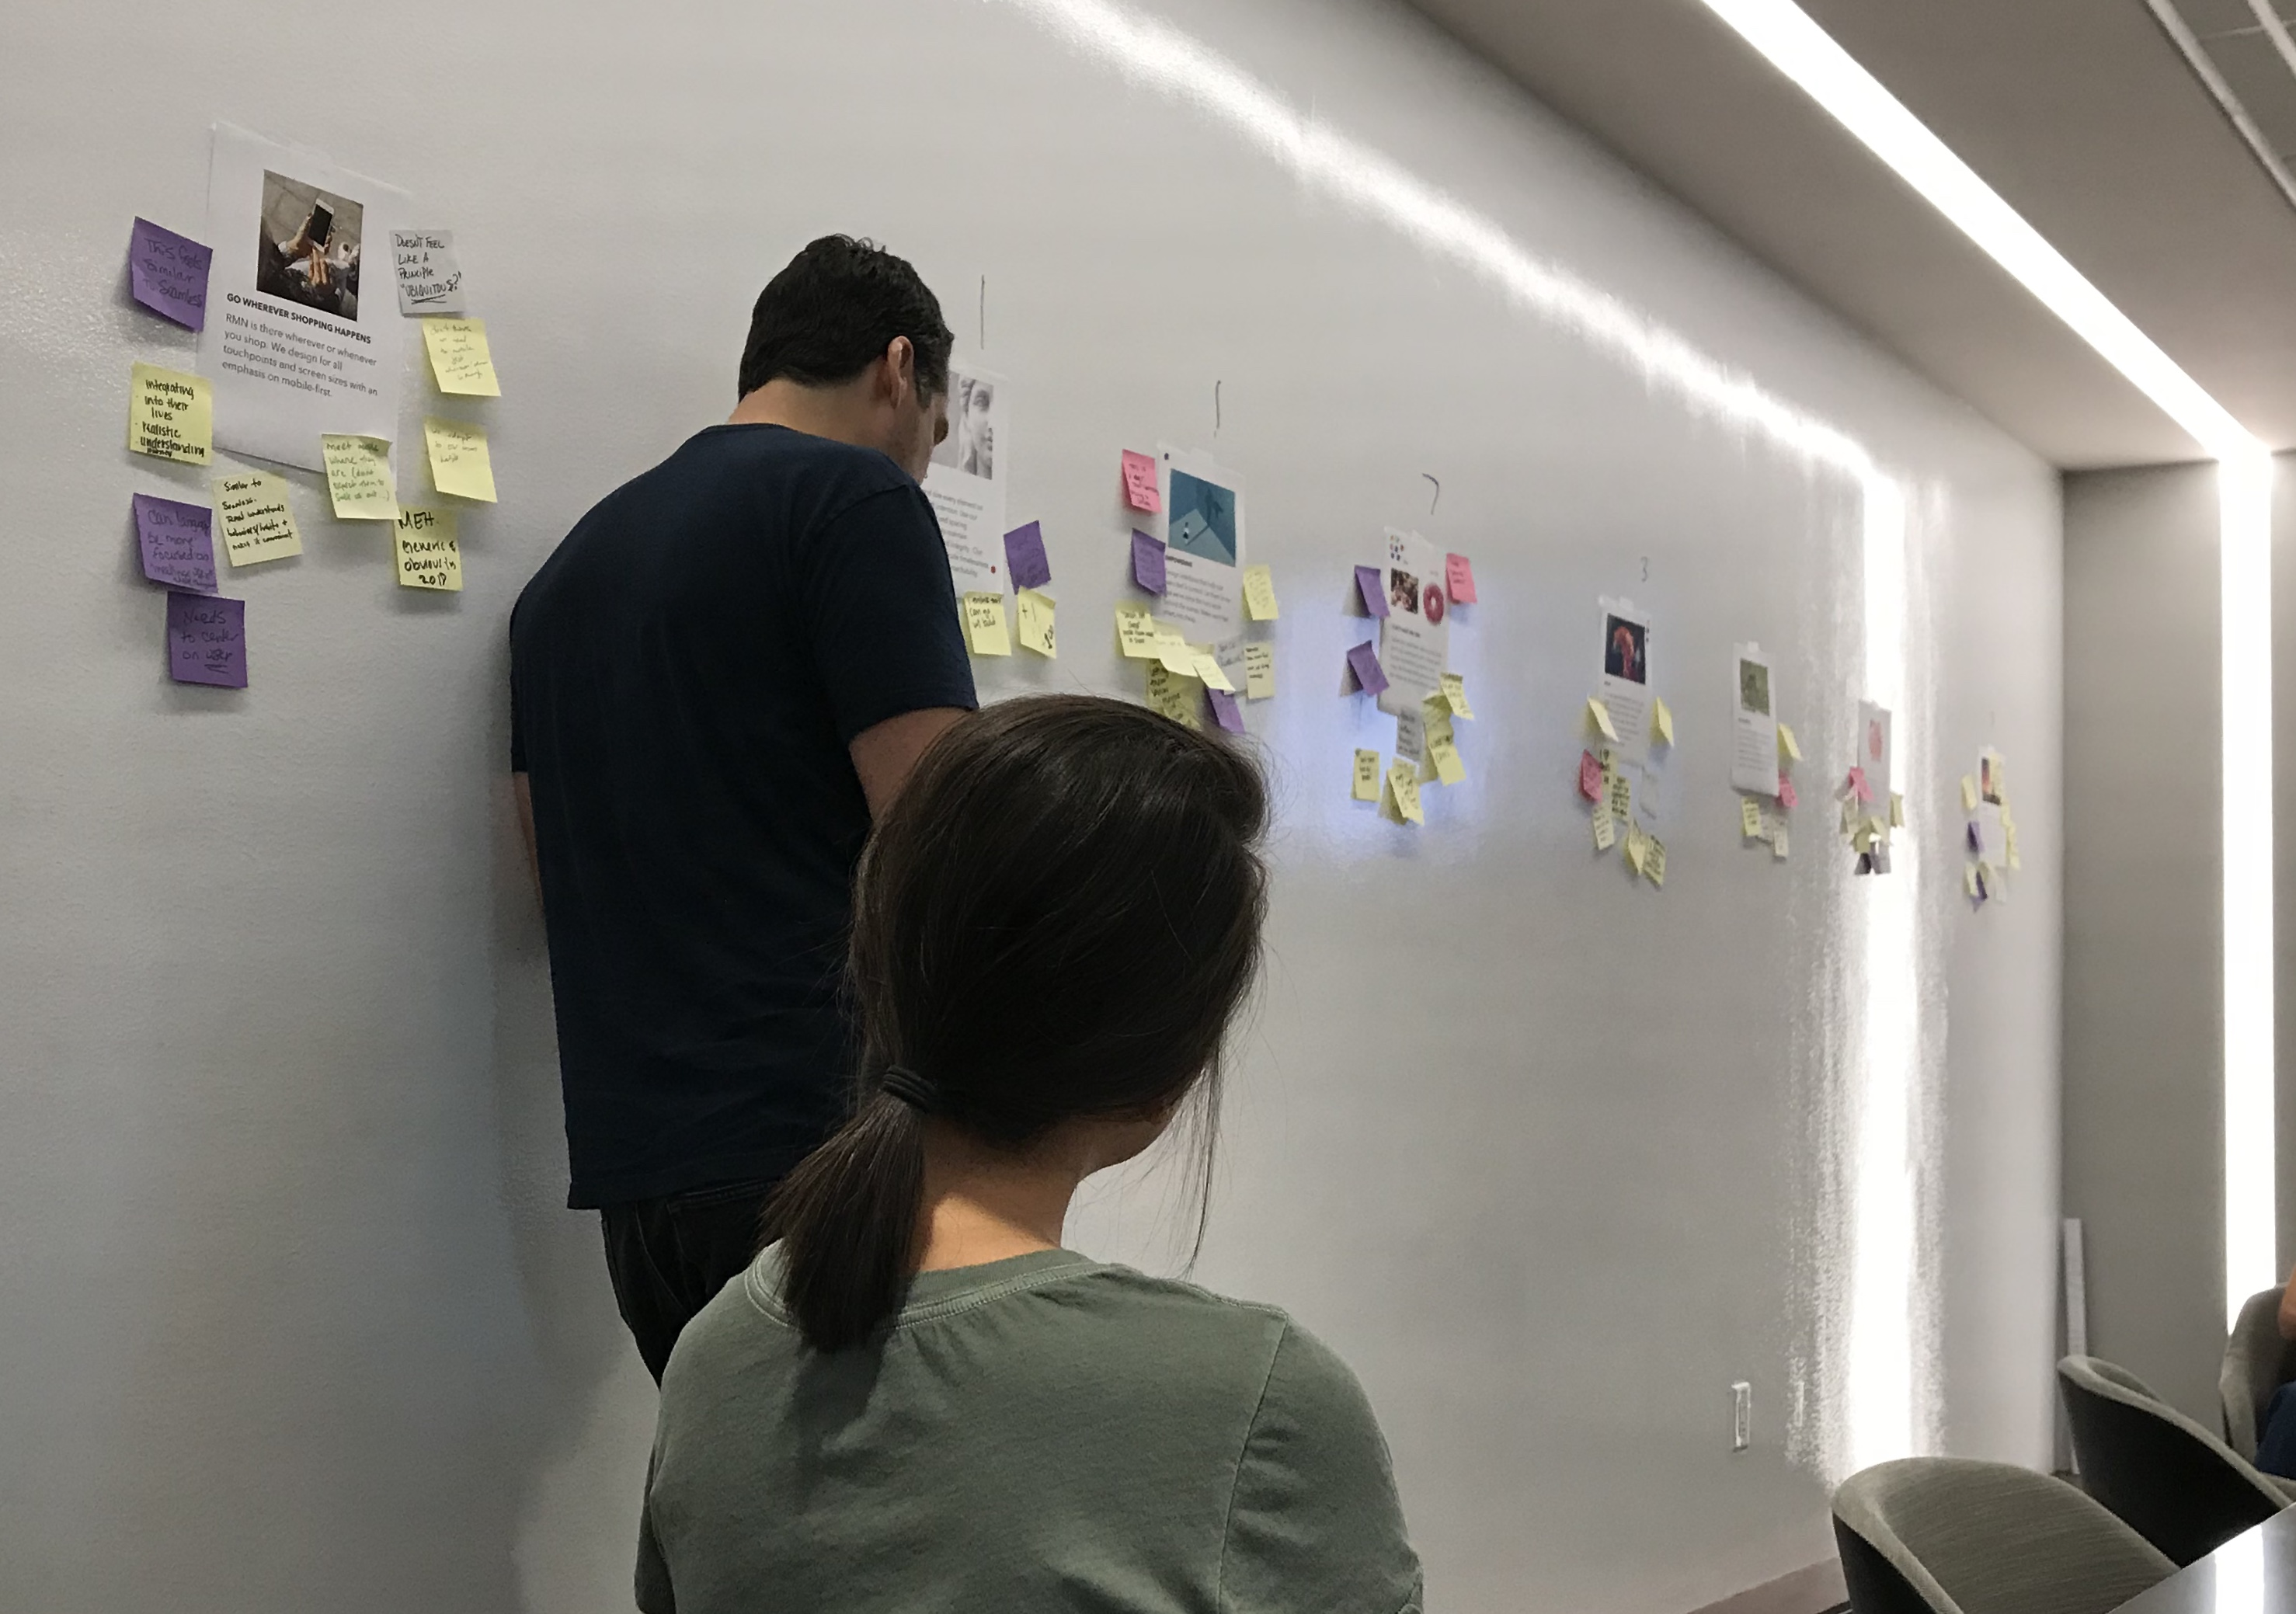 UX Design design studio group with Mitchell Thieman and design team